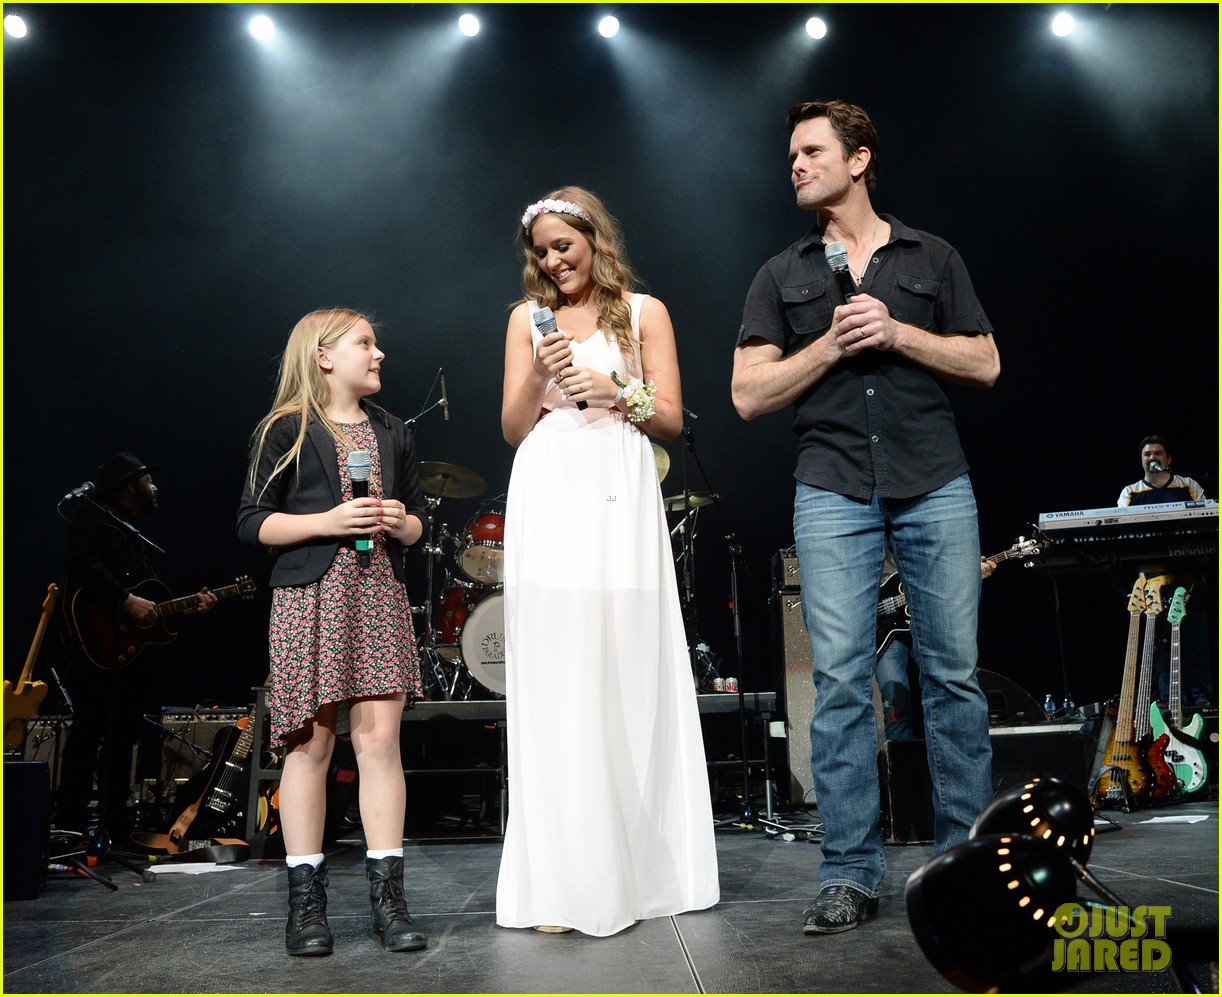 9d110f0c63e58 Nashville's Lennon Stella Leaves Prom Early to Sing at Concert ...